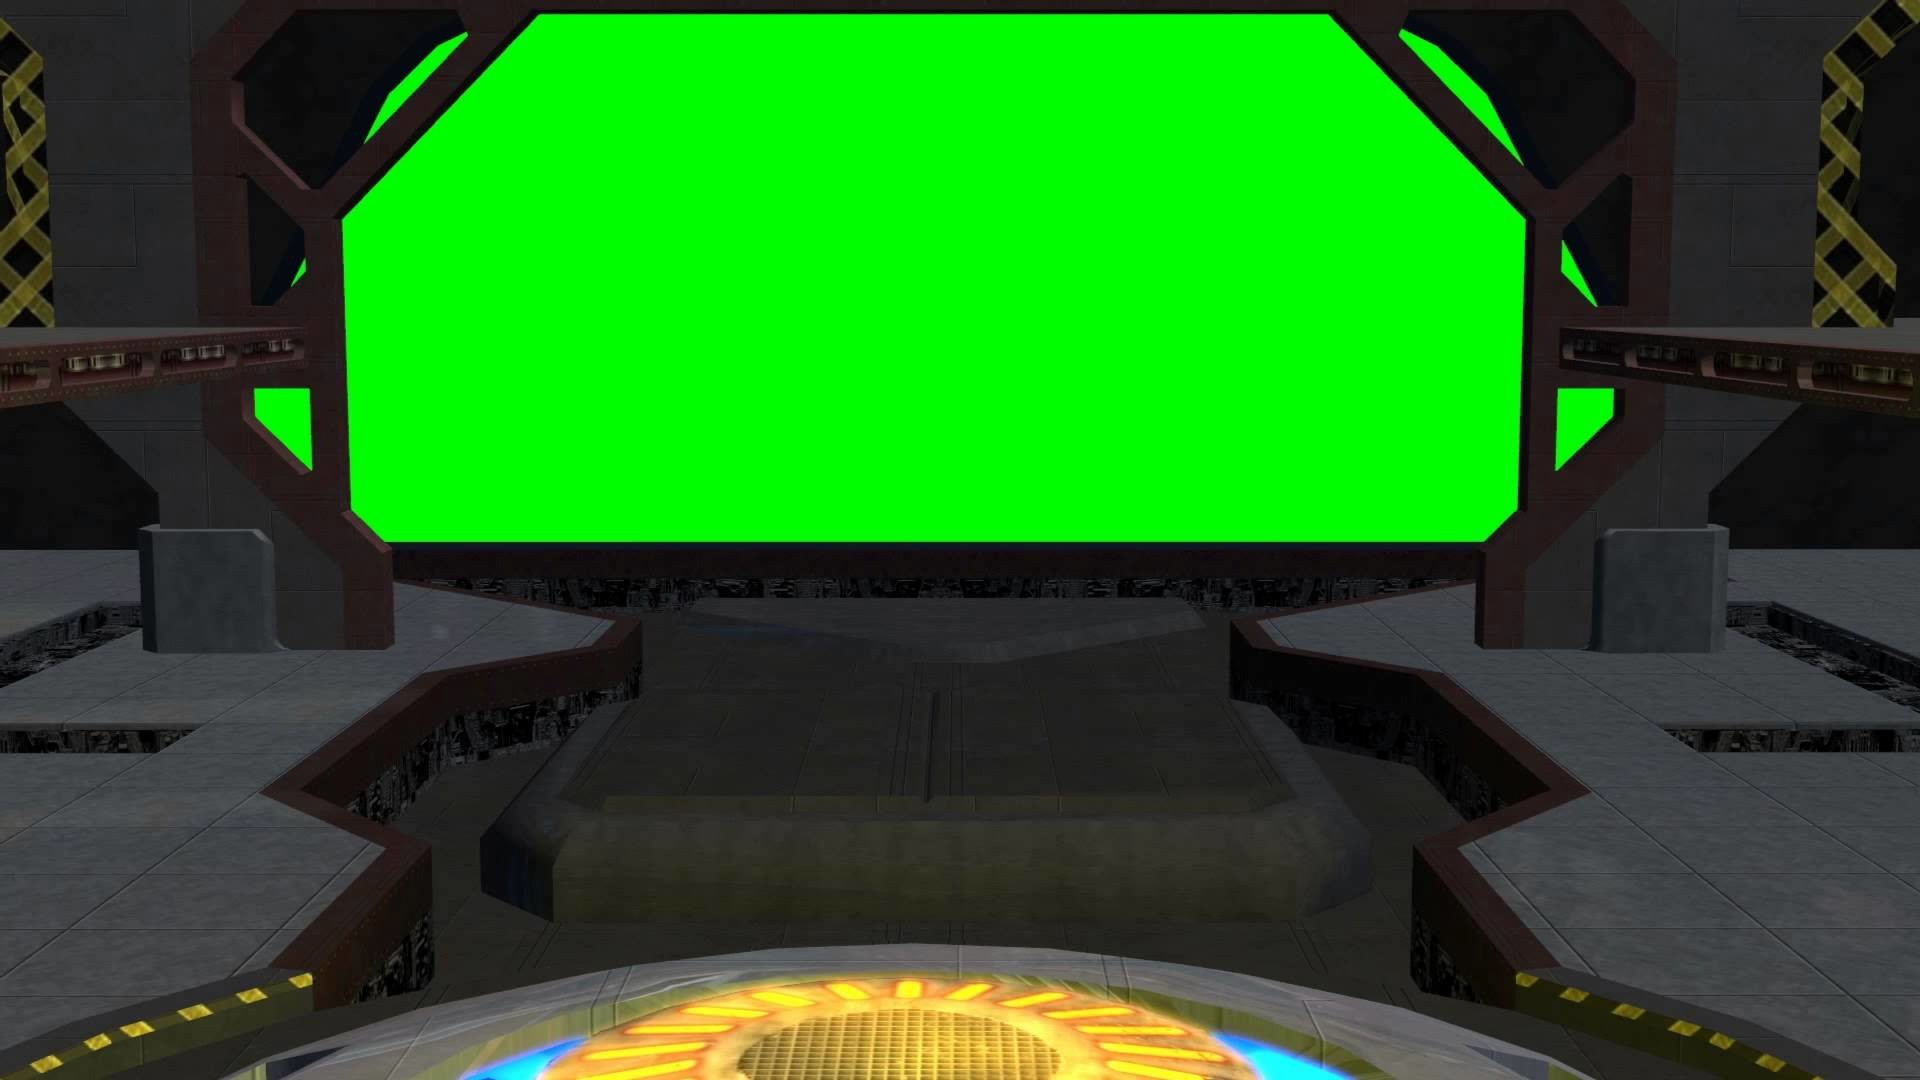 Star Wars Green Screen Backgrounds 57 Pictures